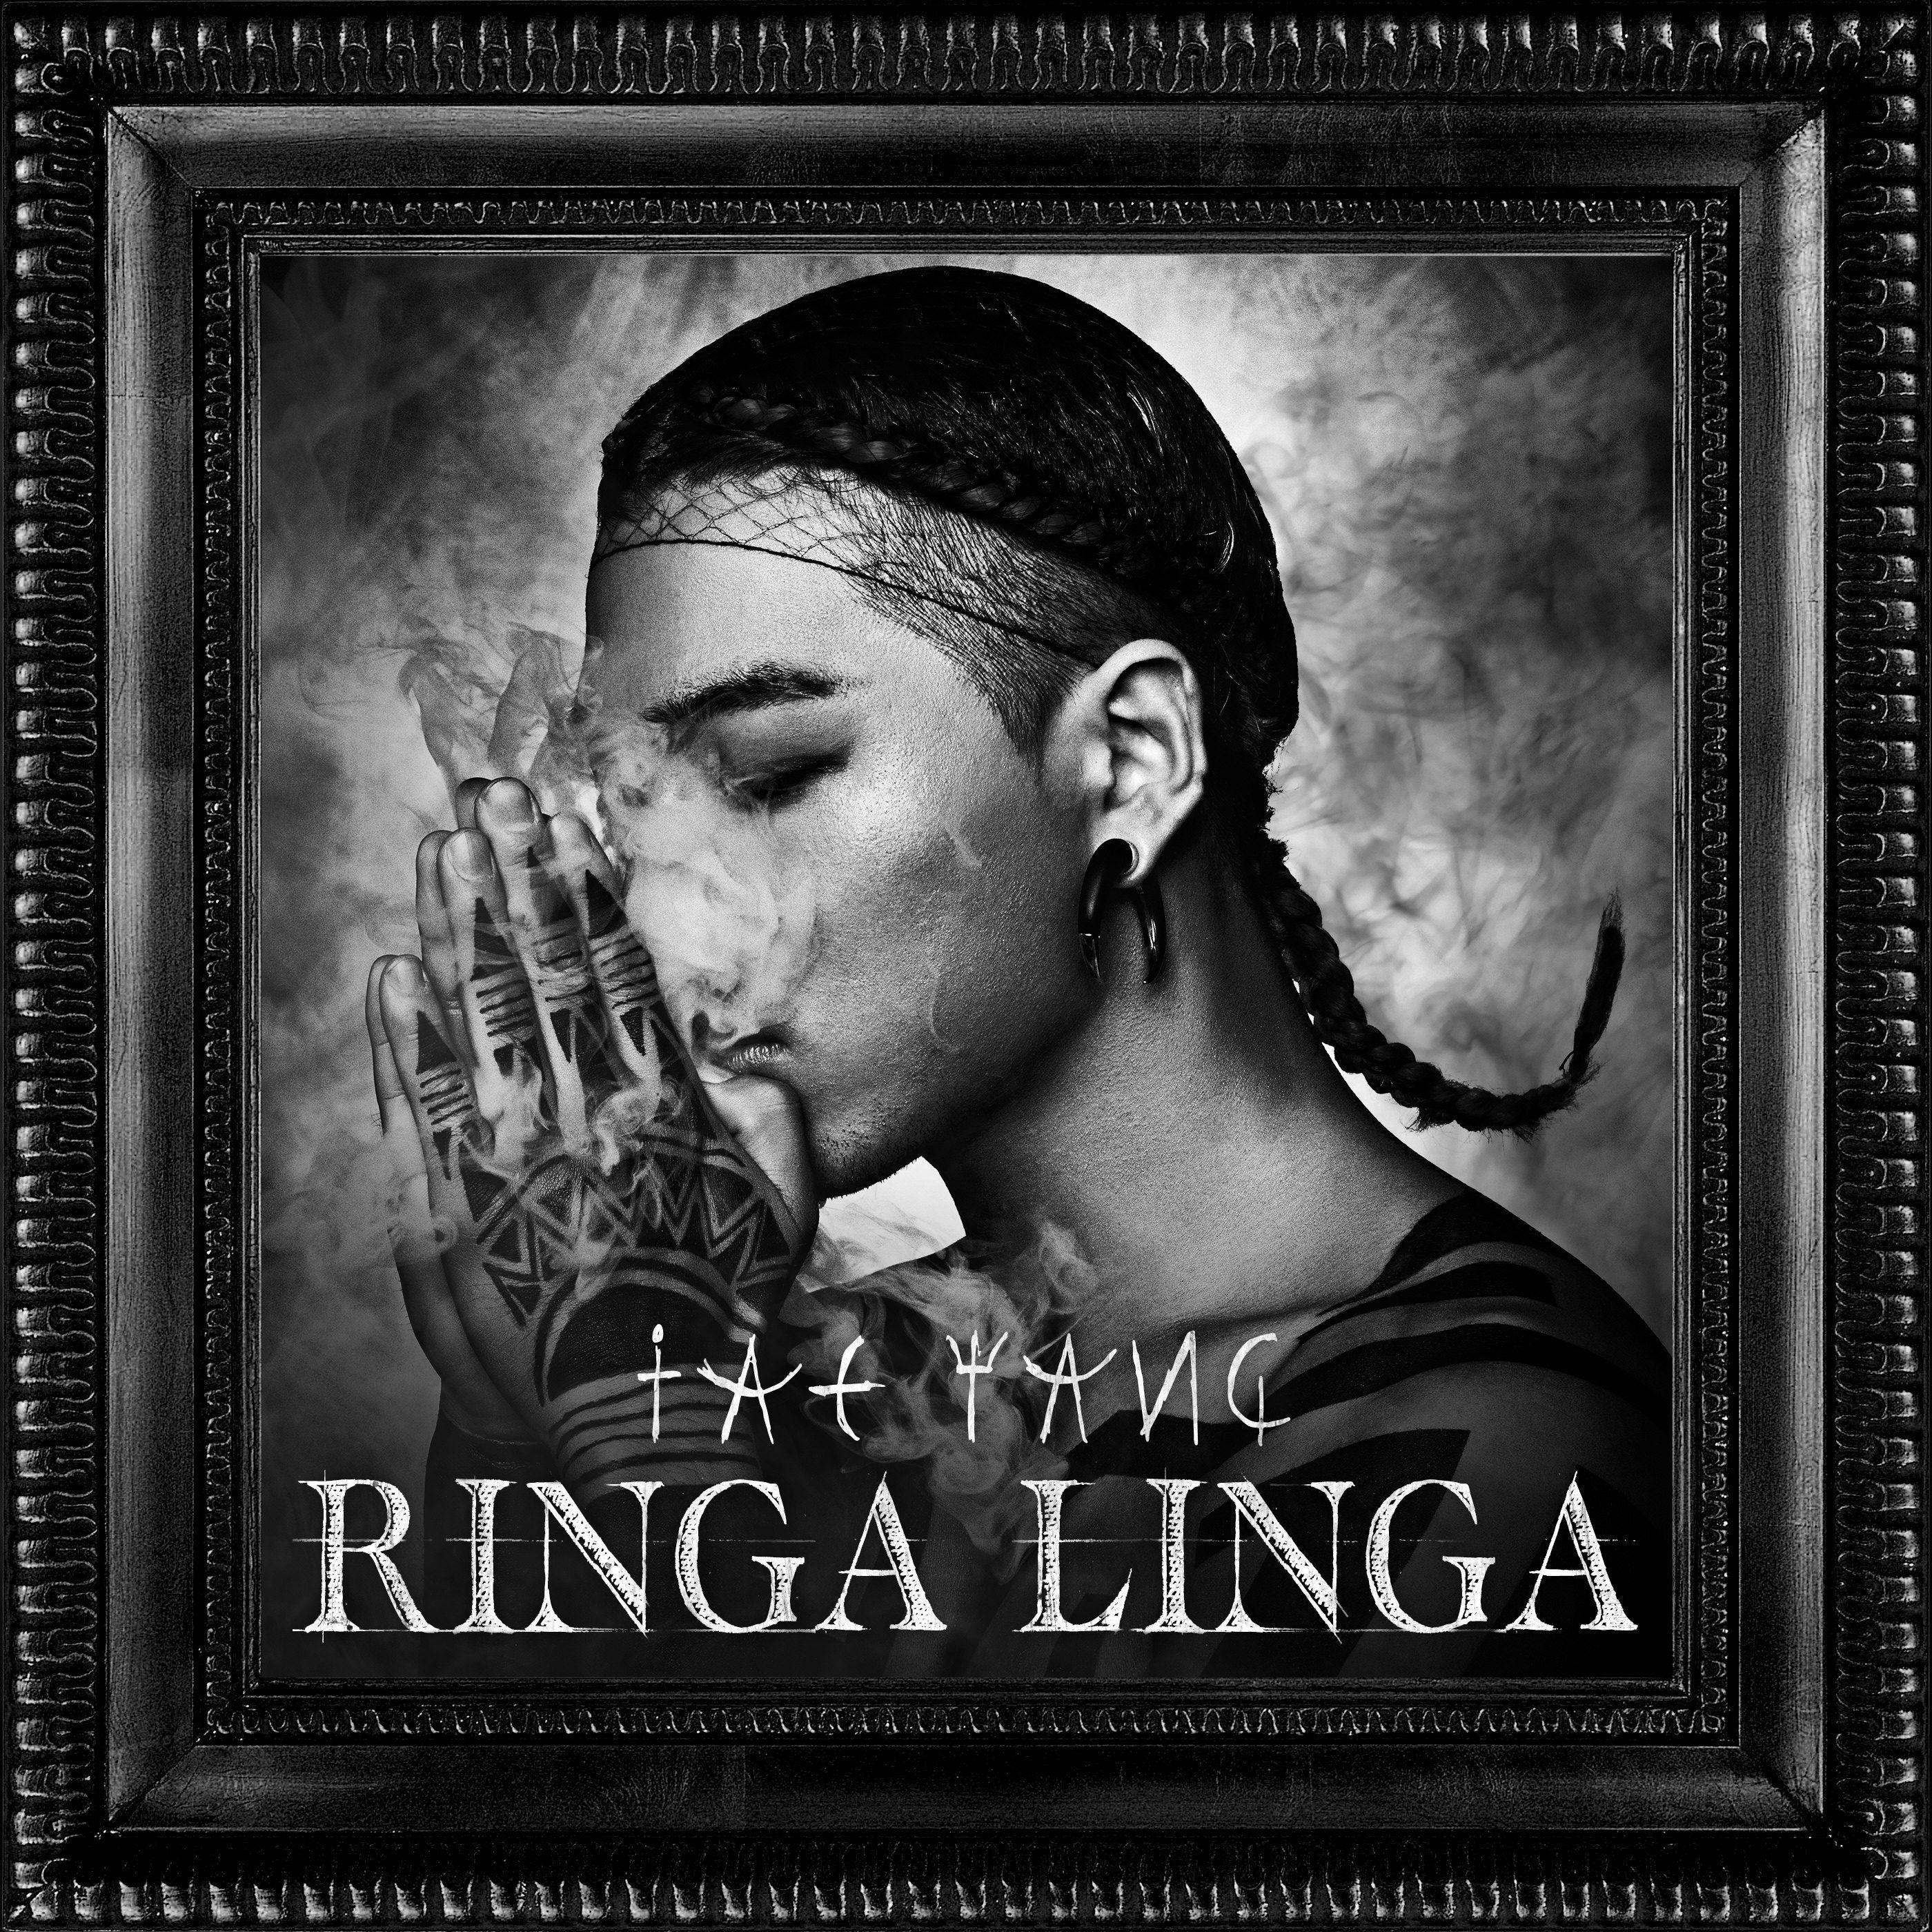 Ringa linga download.